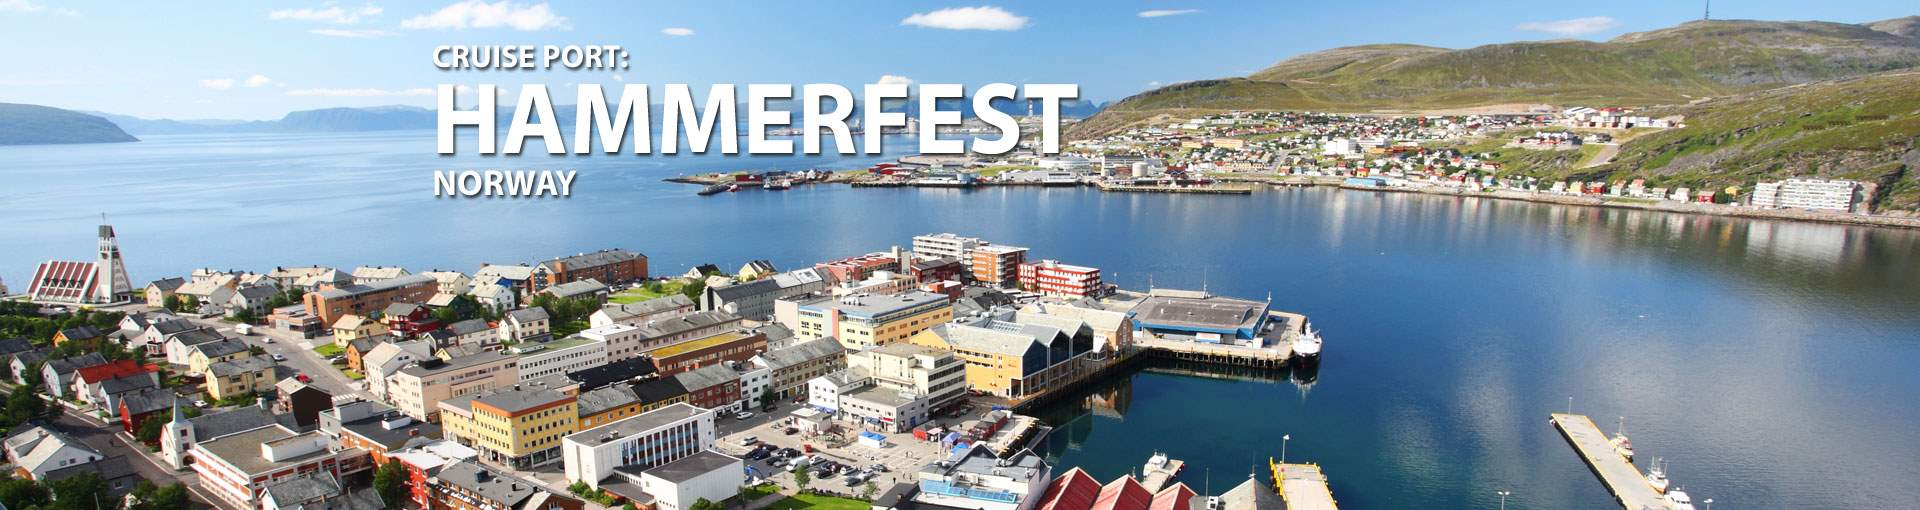 Cruises to Hammerfest, Norway